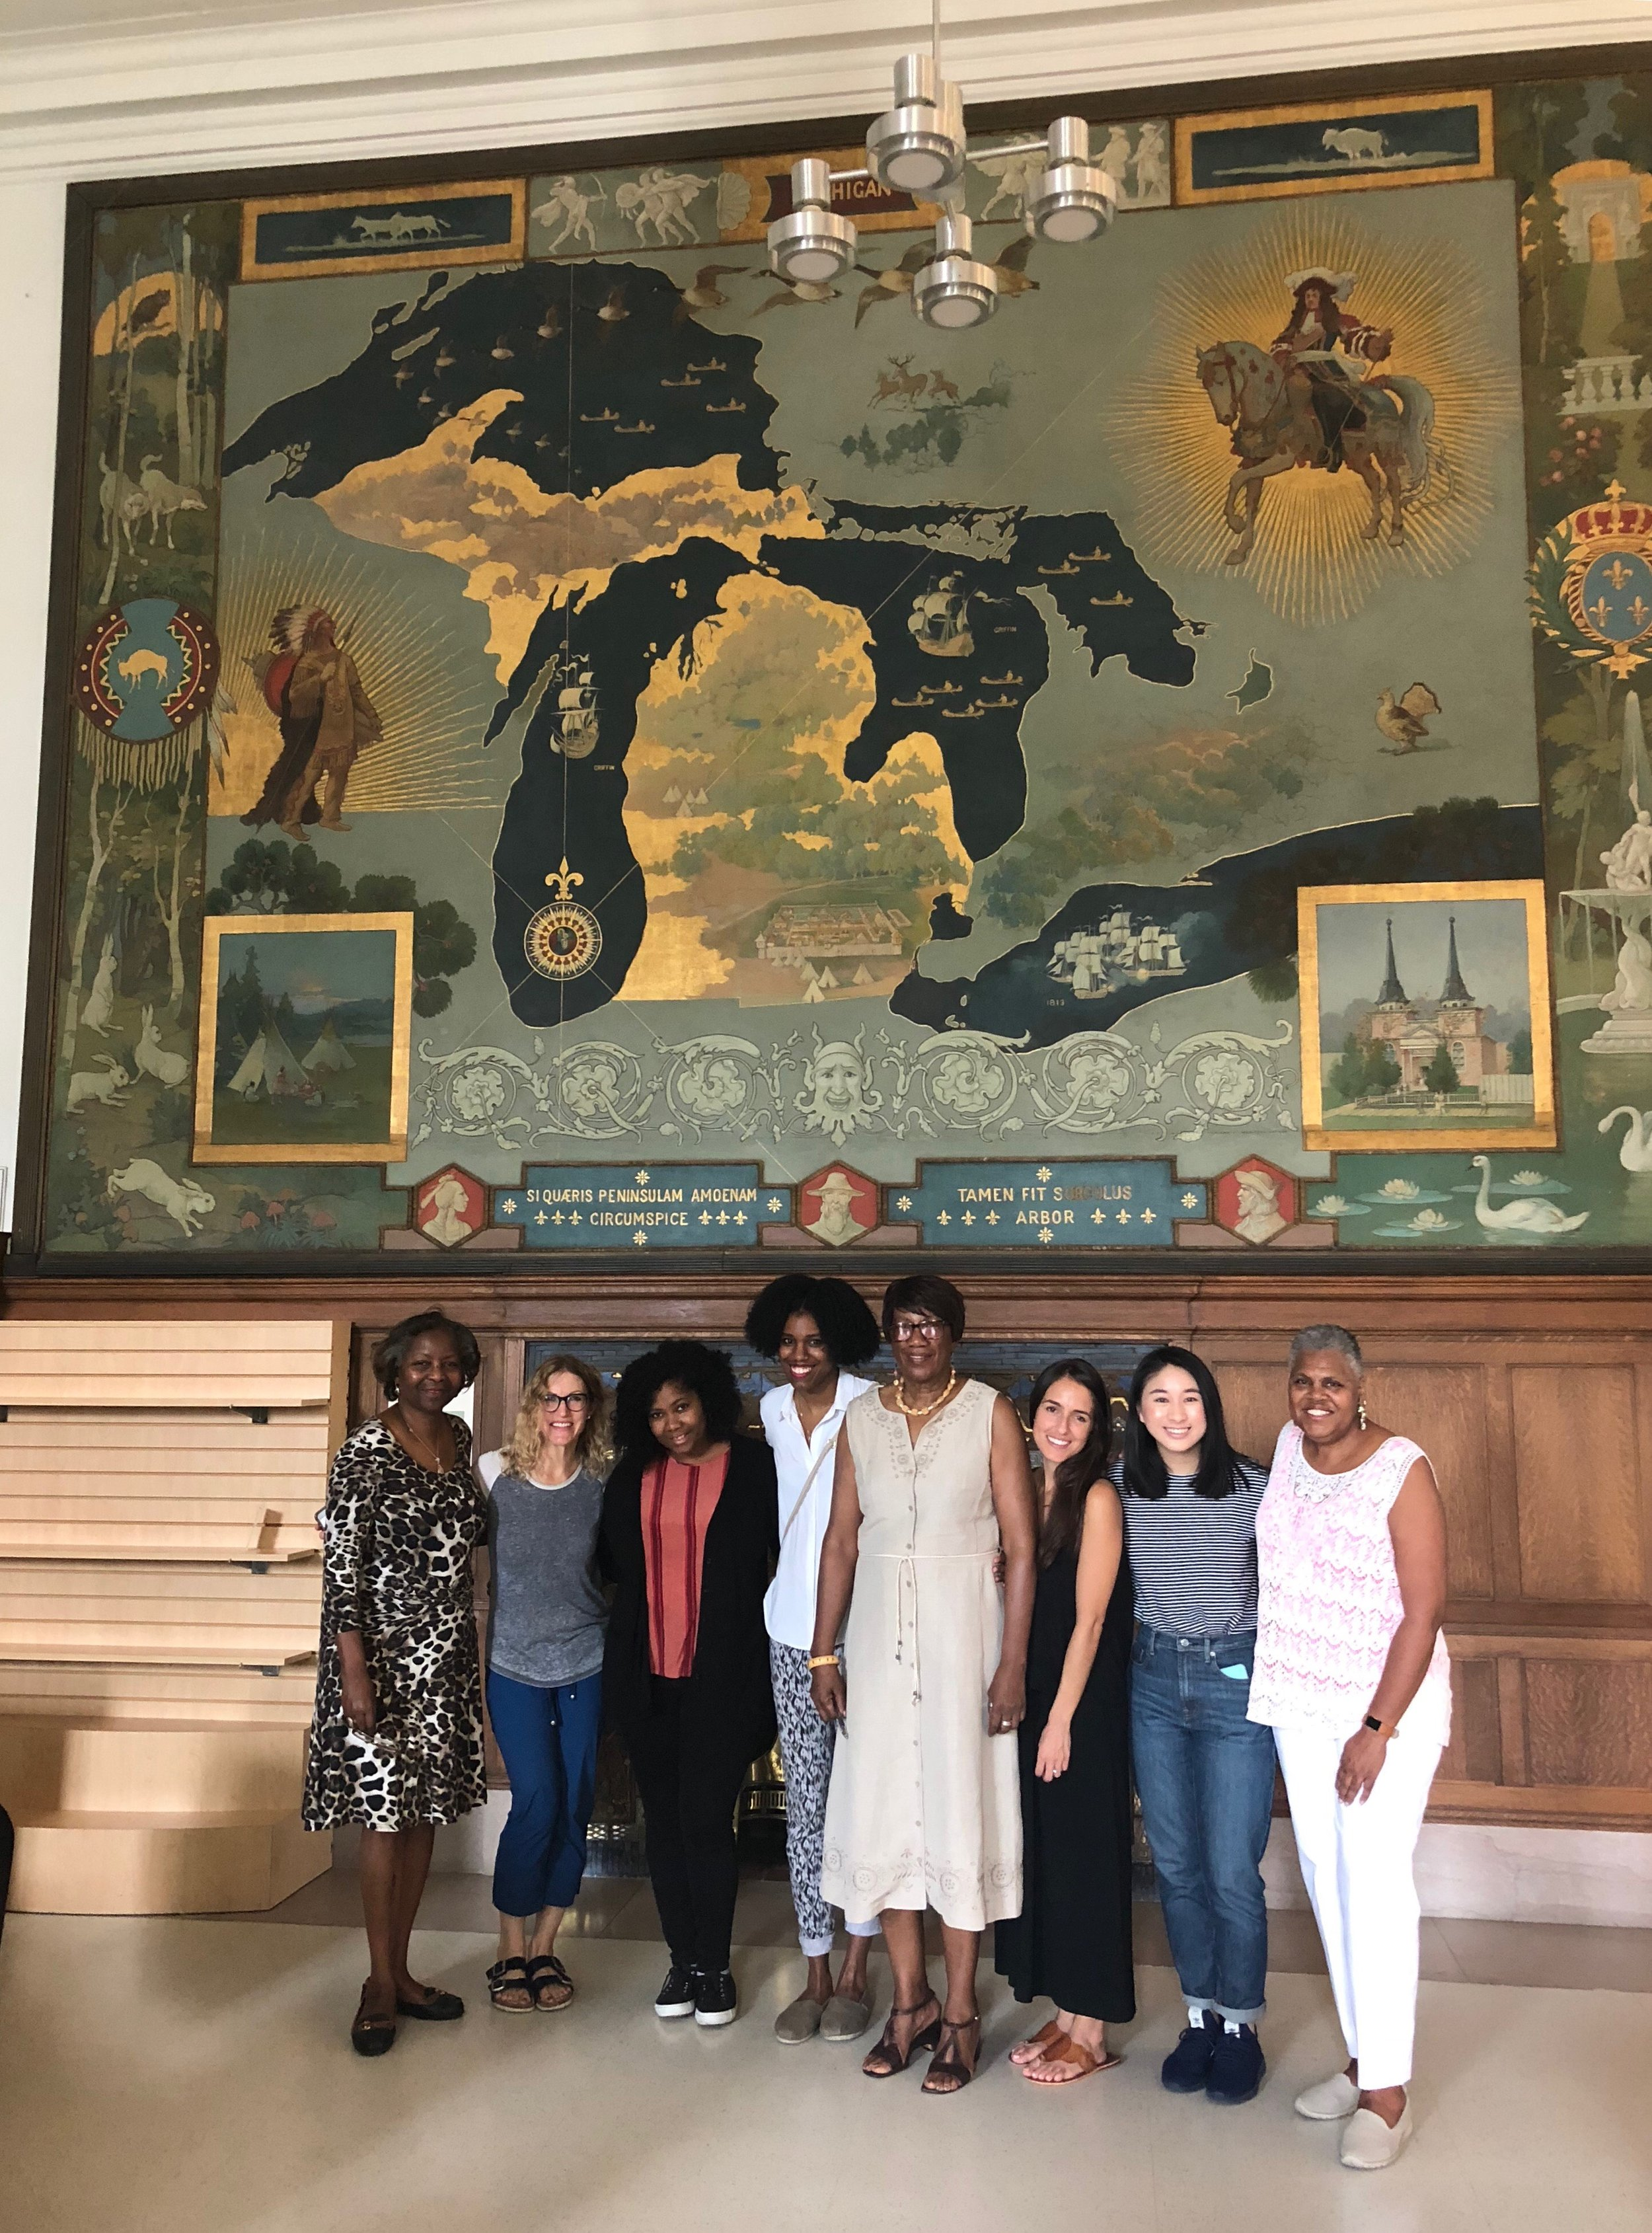 The team tours the Woodward Avenue Main Branch building of the Detroit Public Library.